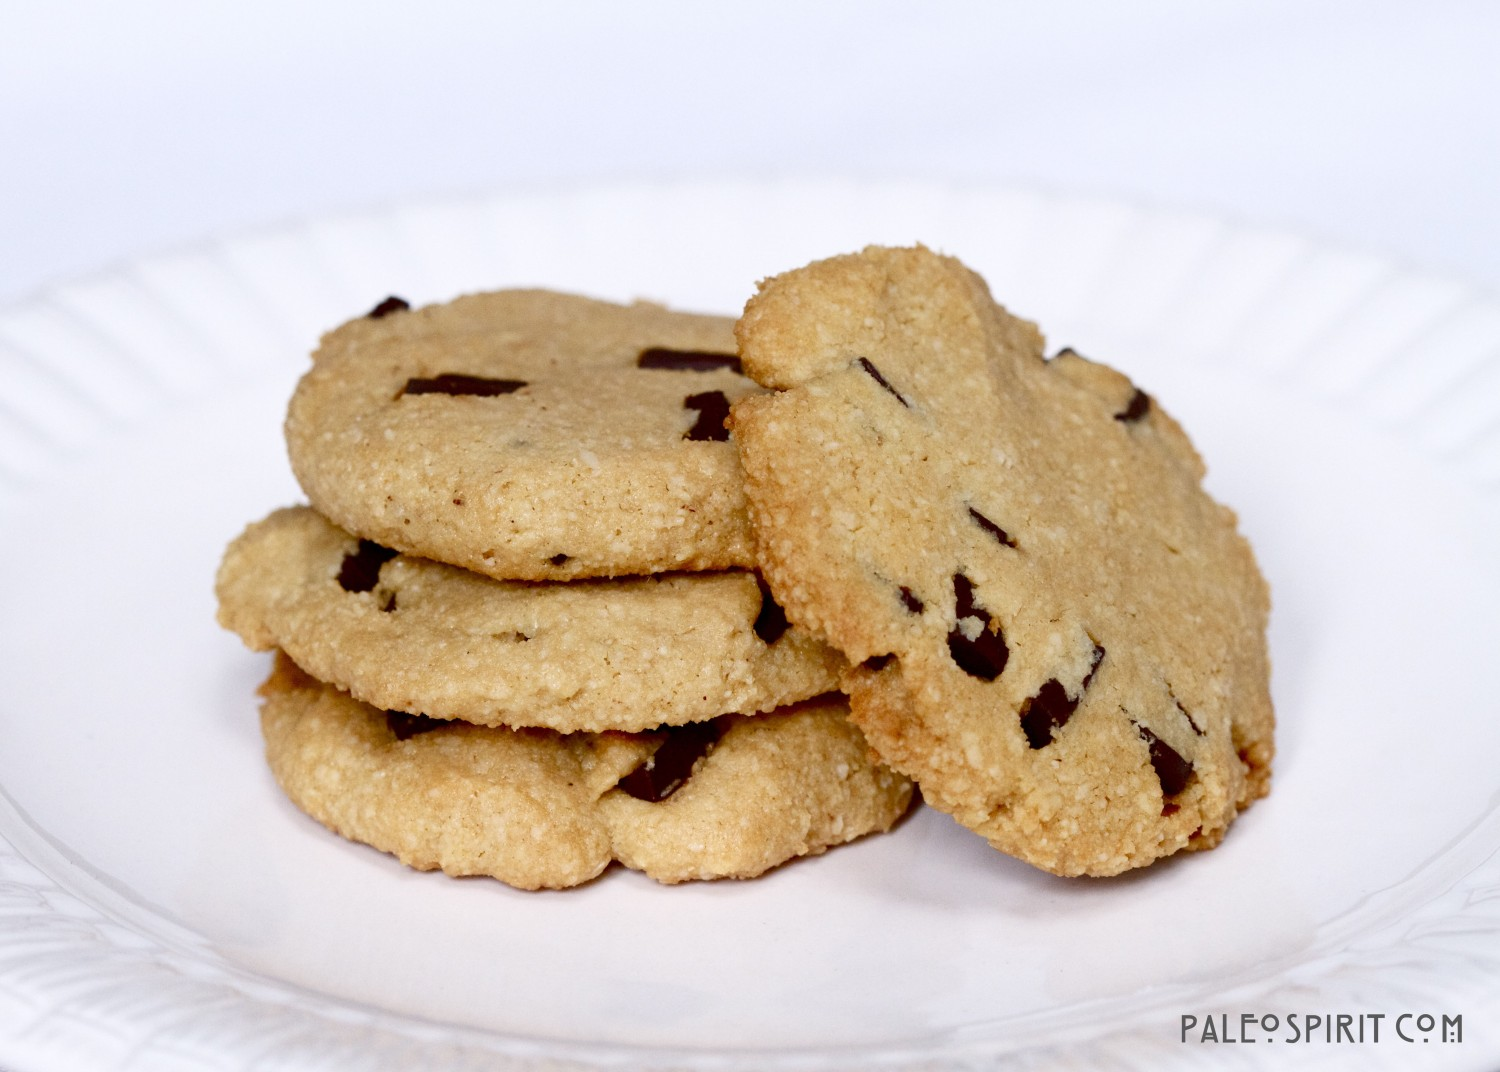 Paleo Chocolate Chip Cookies wm